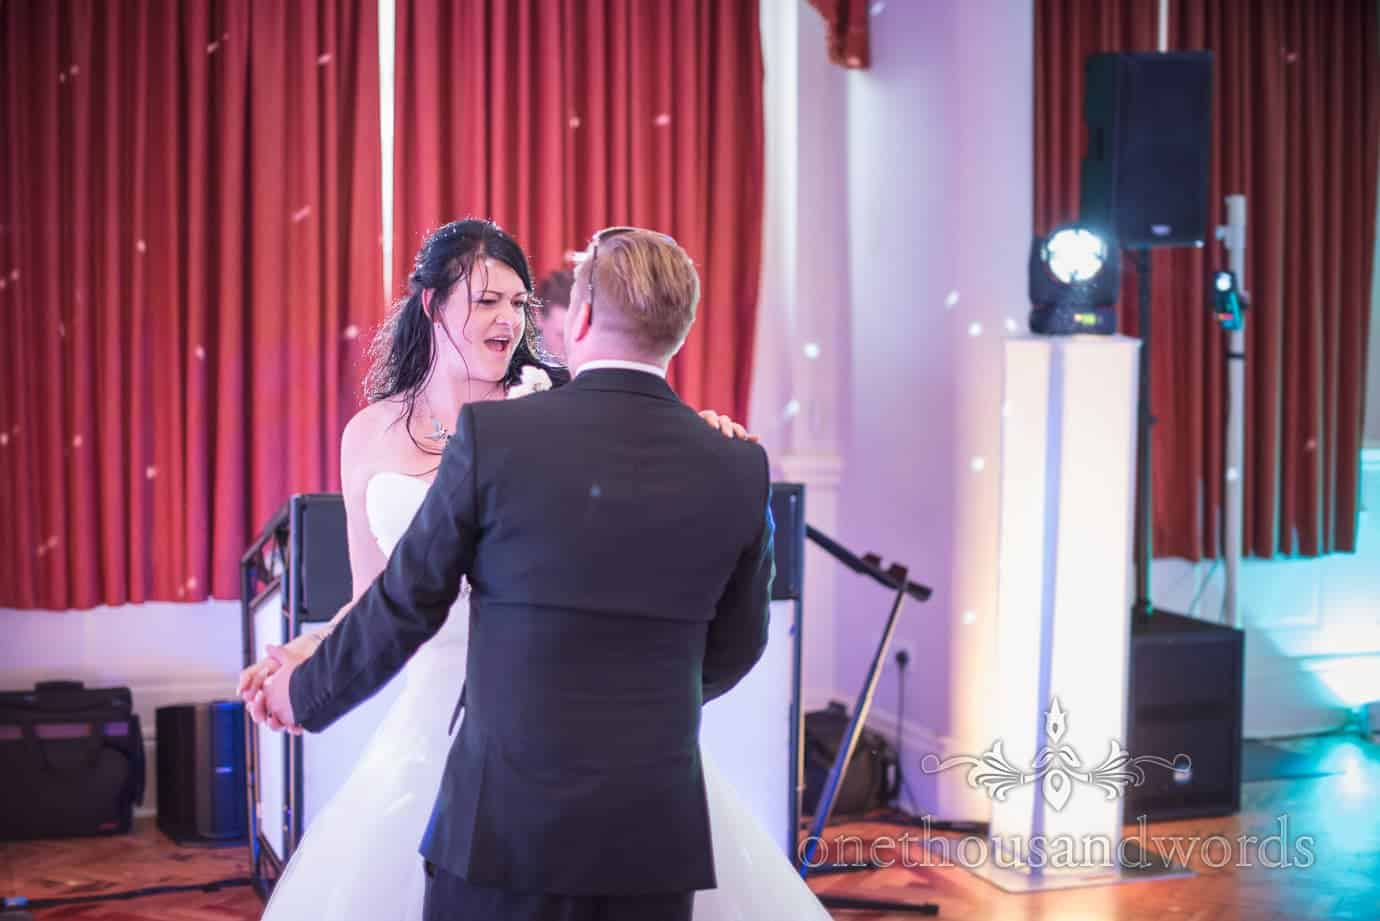 Rock and Roll themed wedding first dance photograph at Haven Hotel Poole